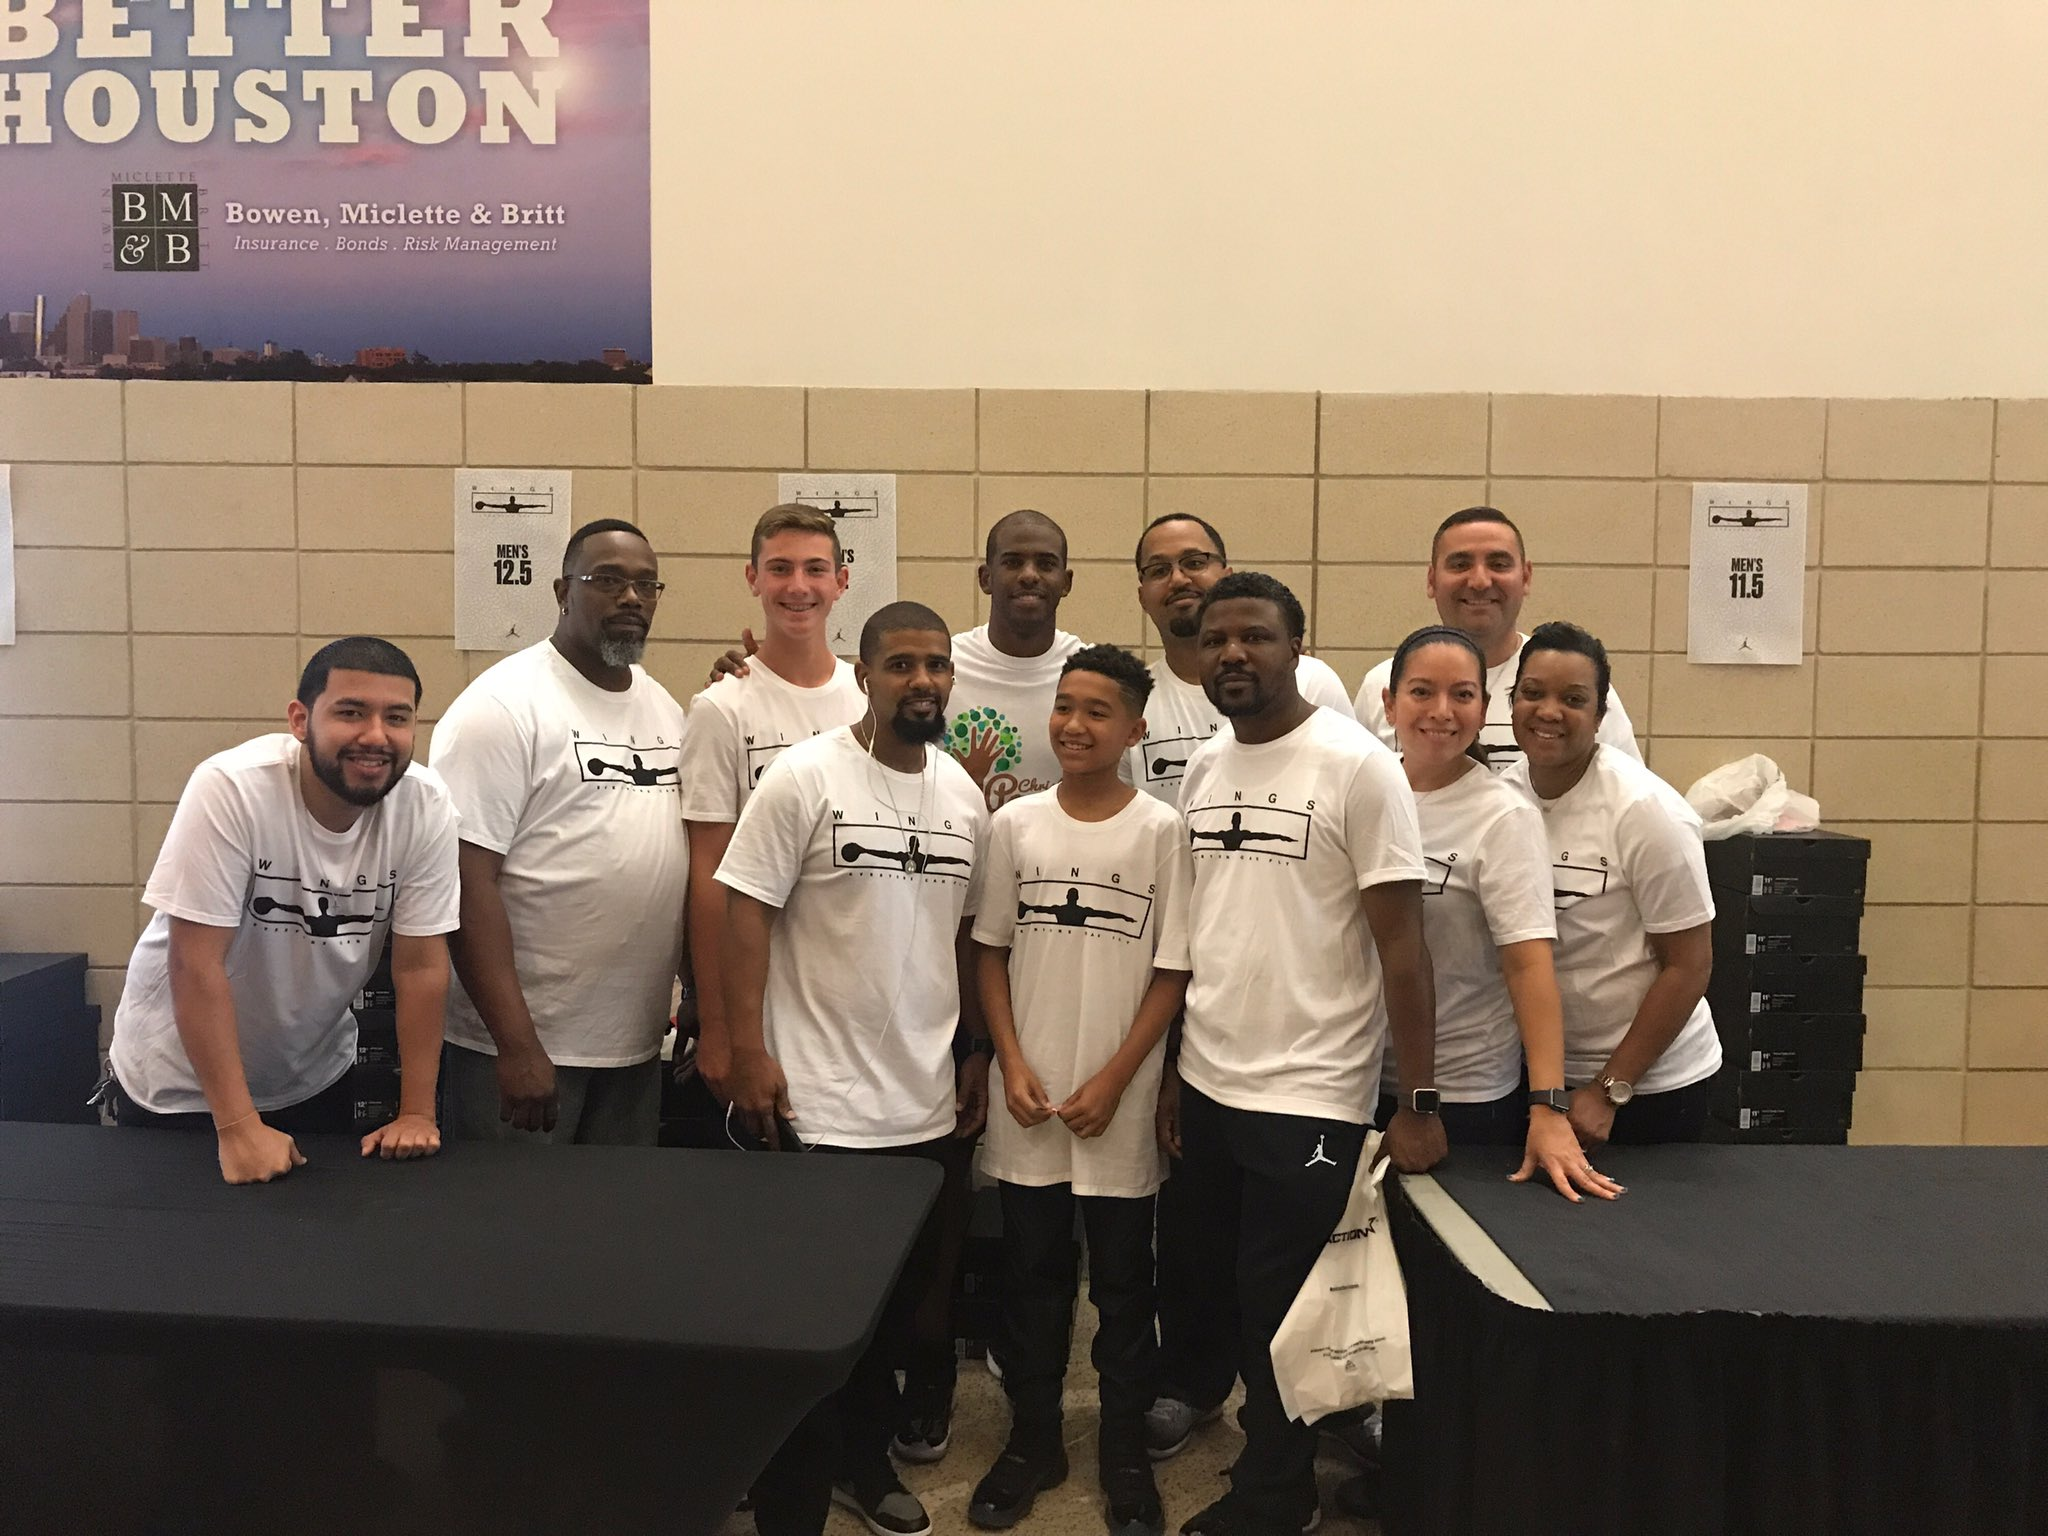 Much love to everyone that helped us give shoes to over 30 schools in the community today!! #CP3Family #CP3Cares https://t.co/rGHnoaz4uQ